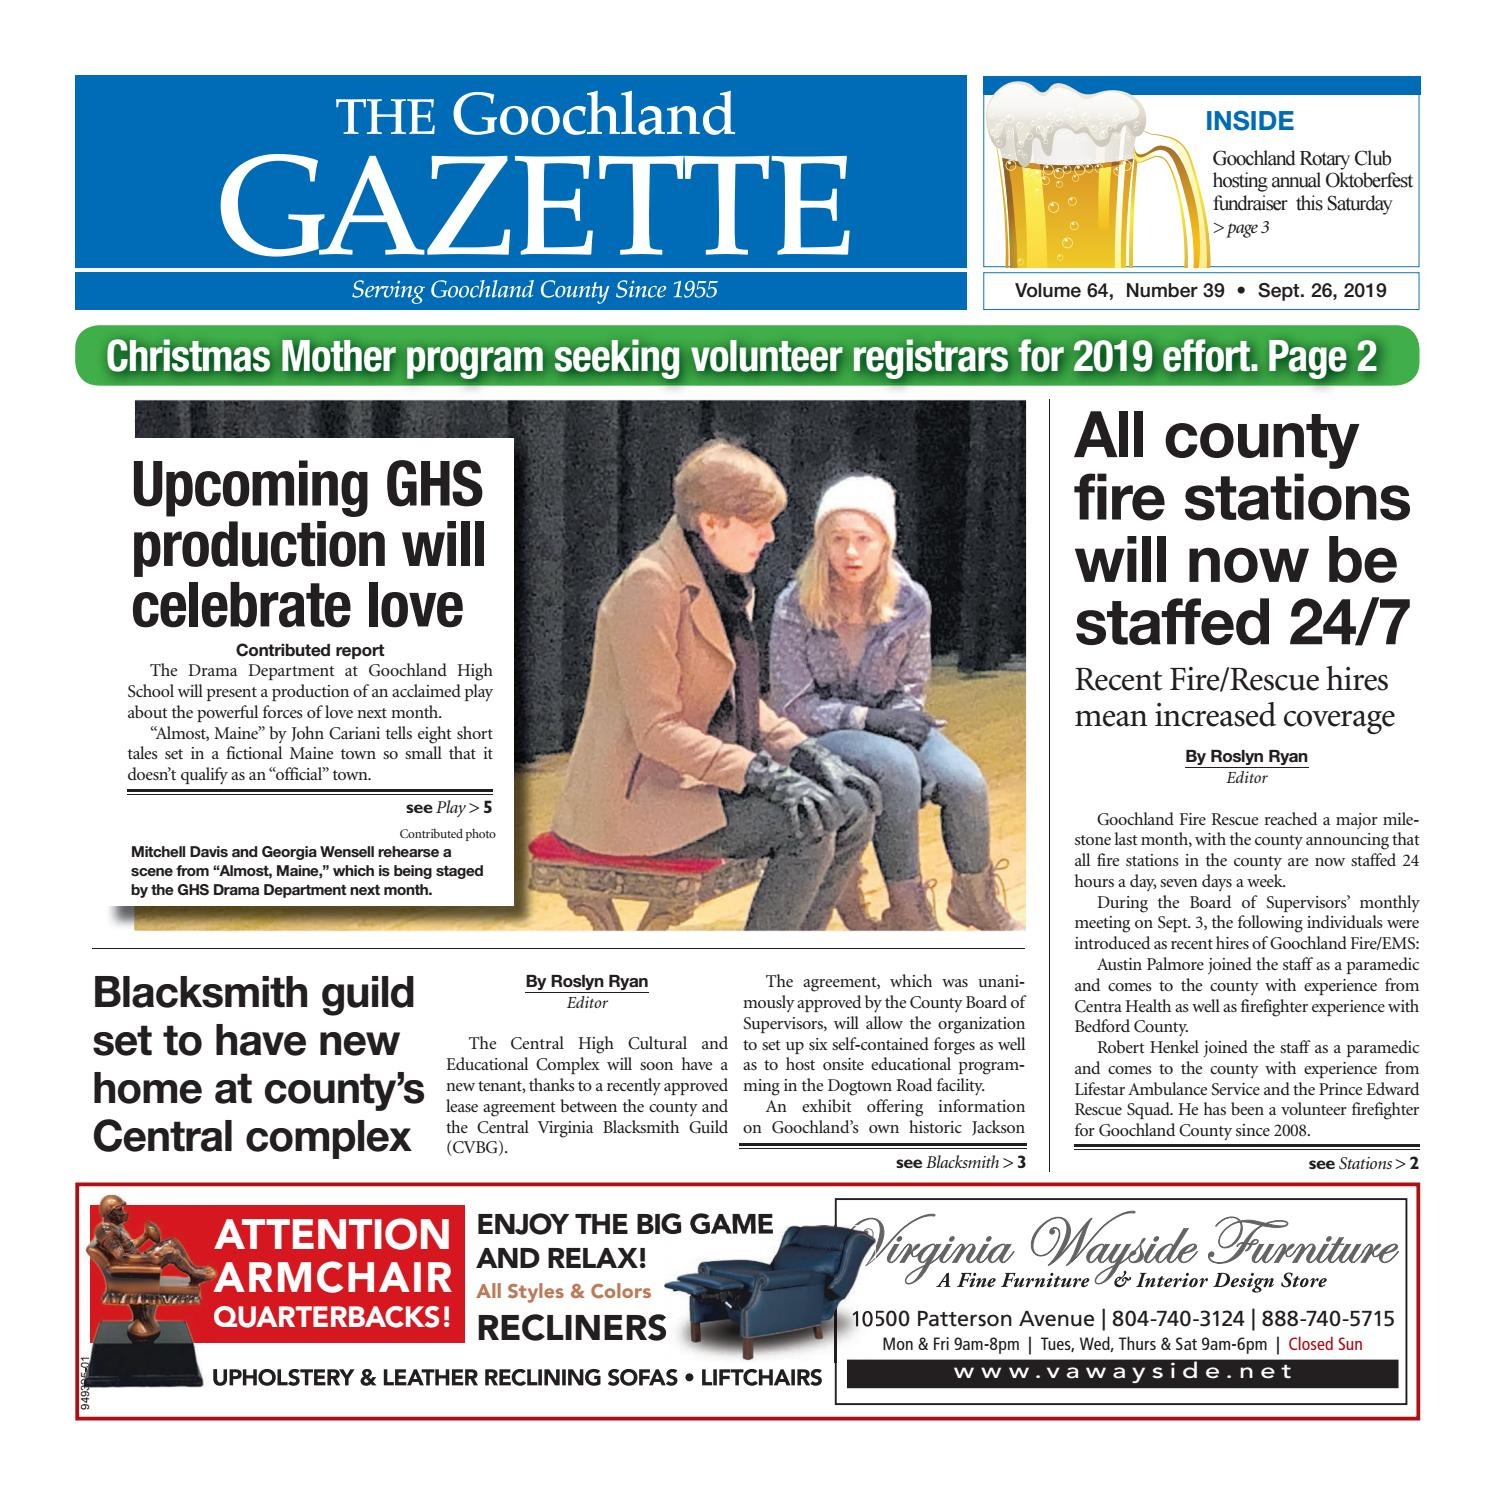 Pi S From Iheart Christmas Party 2020 Cleveland Obio The Goochland Gazette – 09/26/2019 by Goochland Gazette   issuu